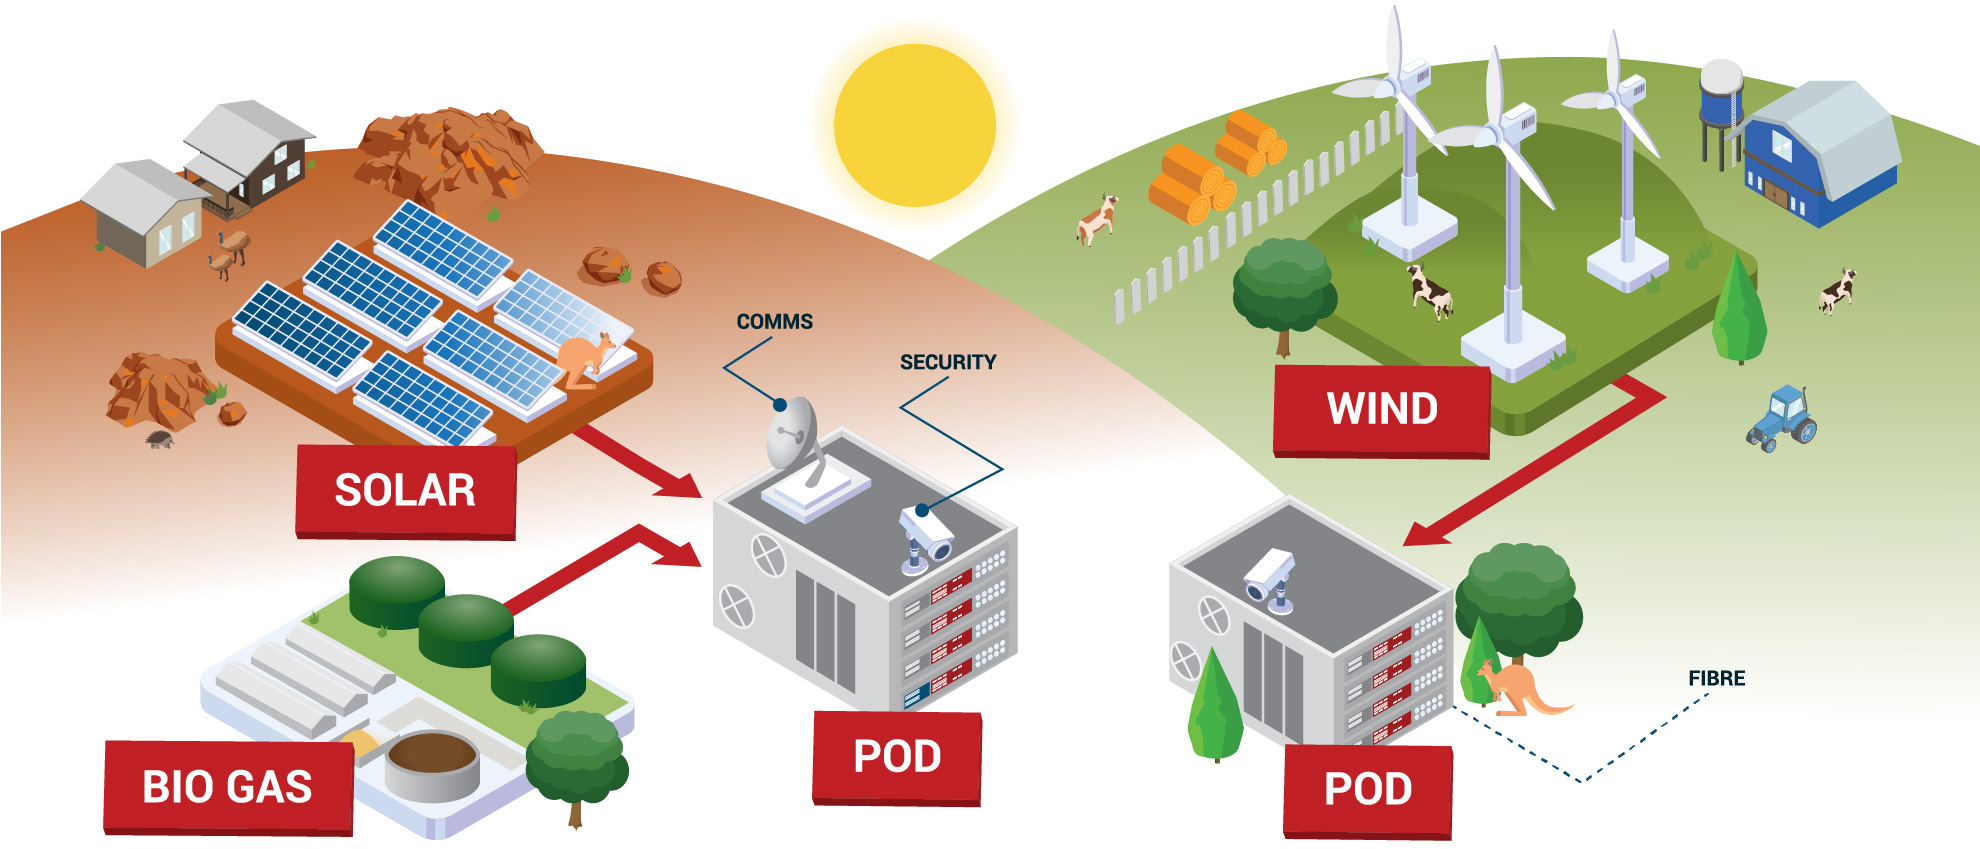 DC Modular diagram showing all the components using renewable energy